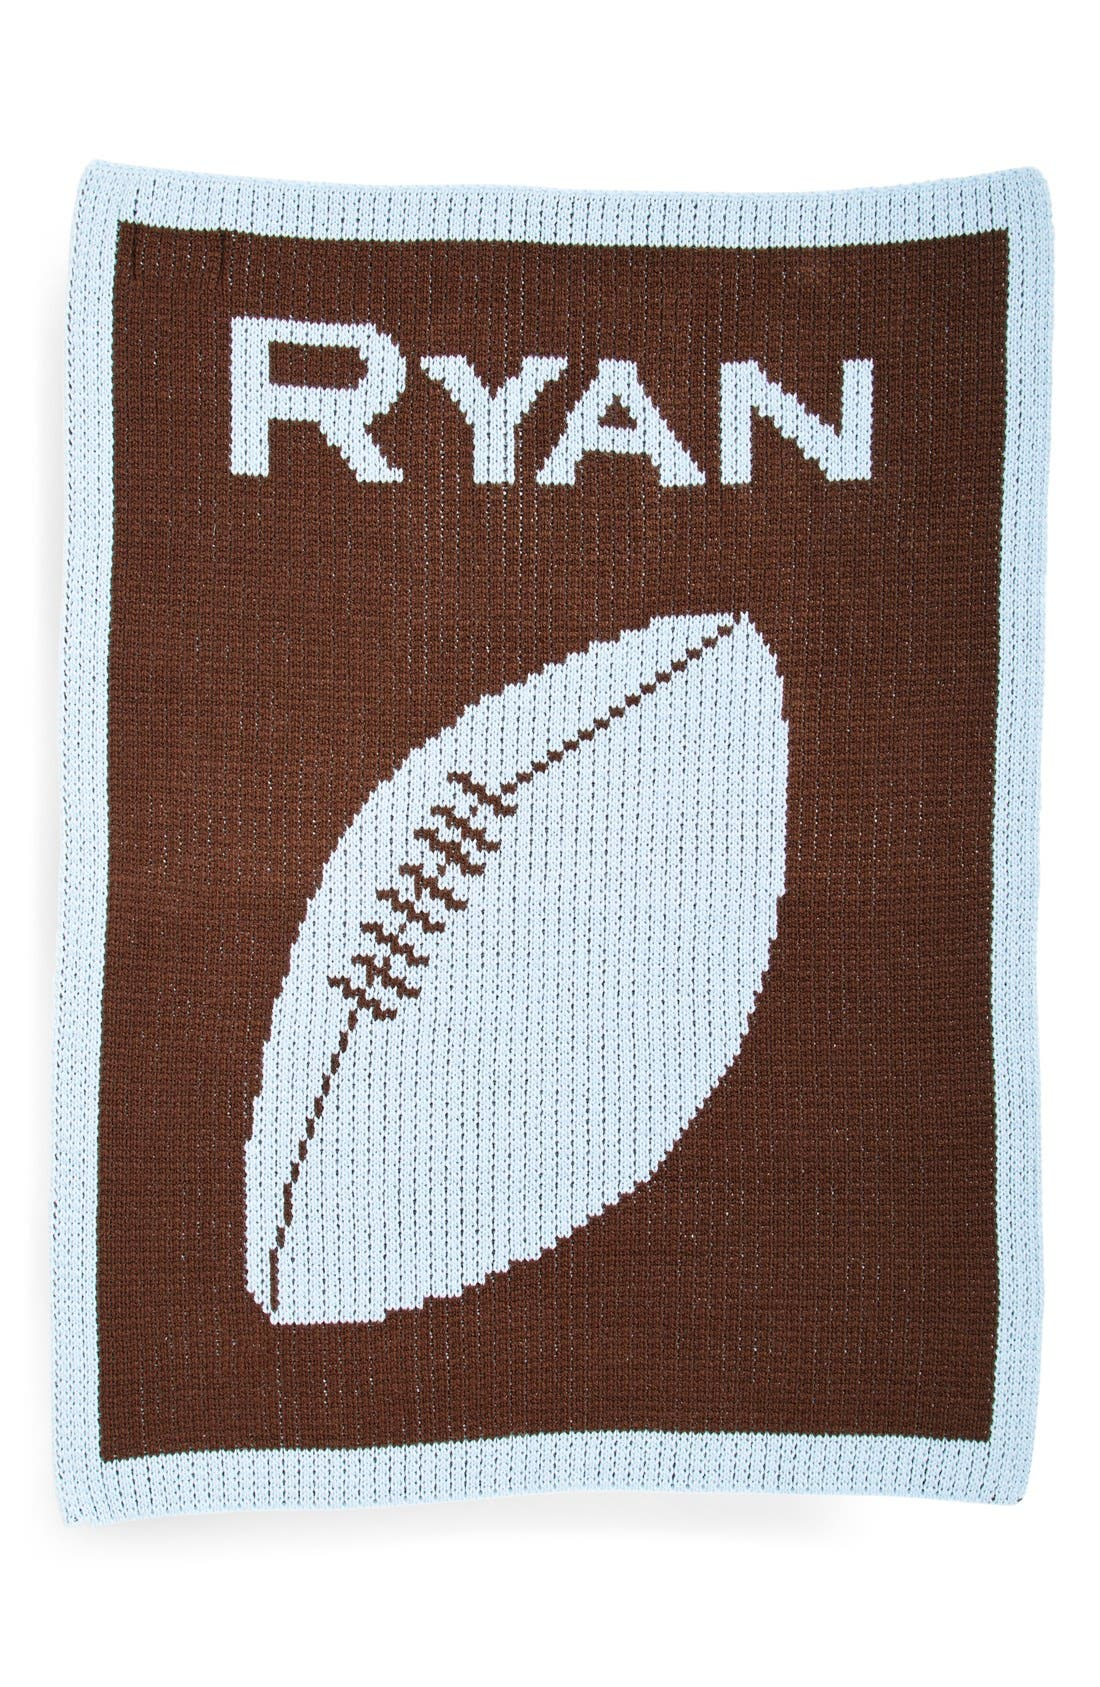 Alternate Image 1 Selected - Butterscotch Blankees 'Football' Personalized Blanket